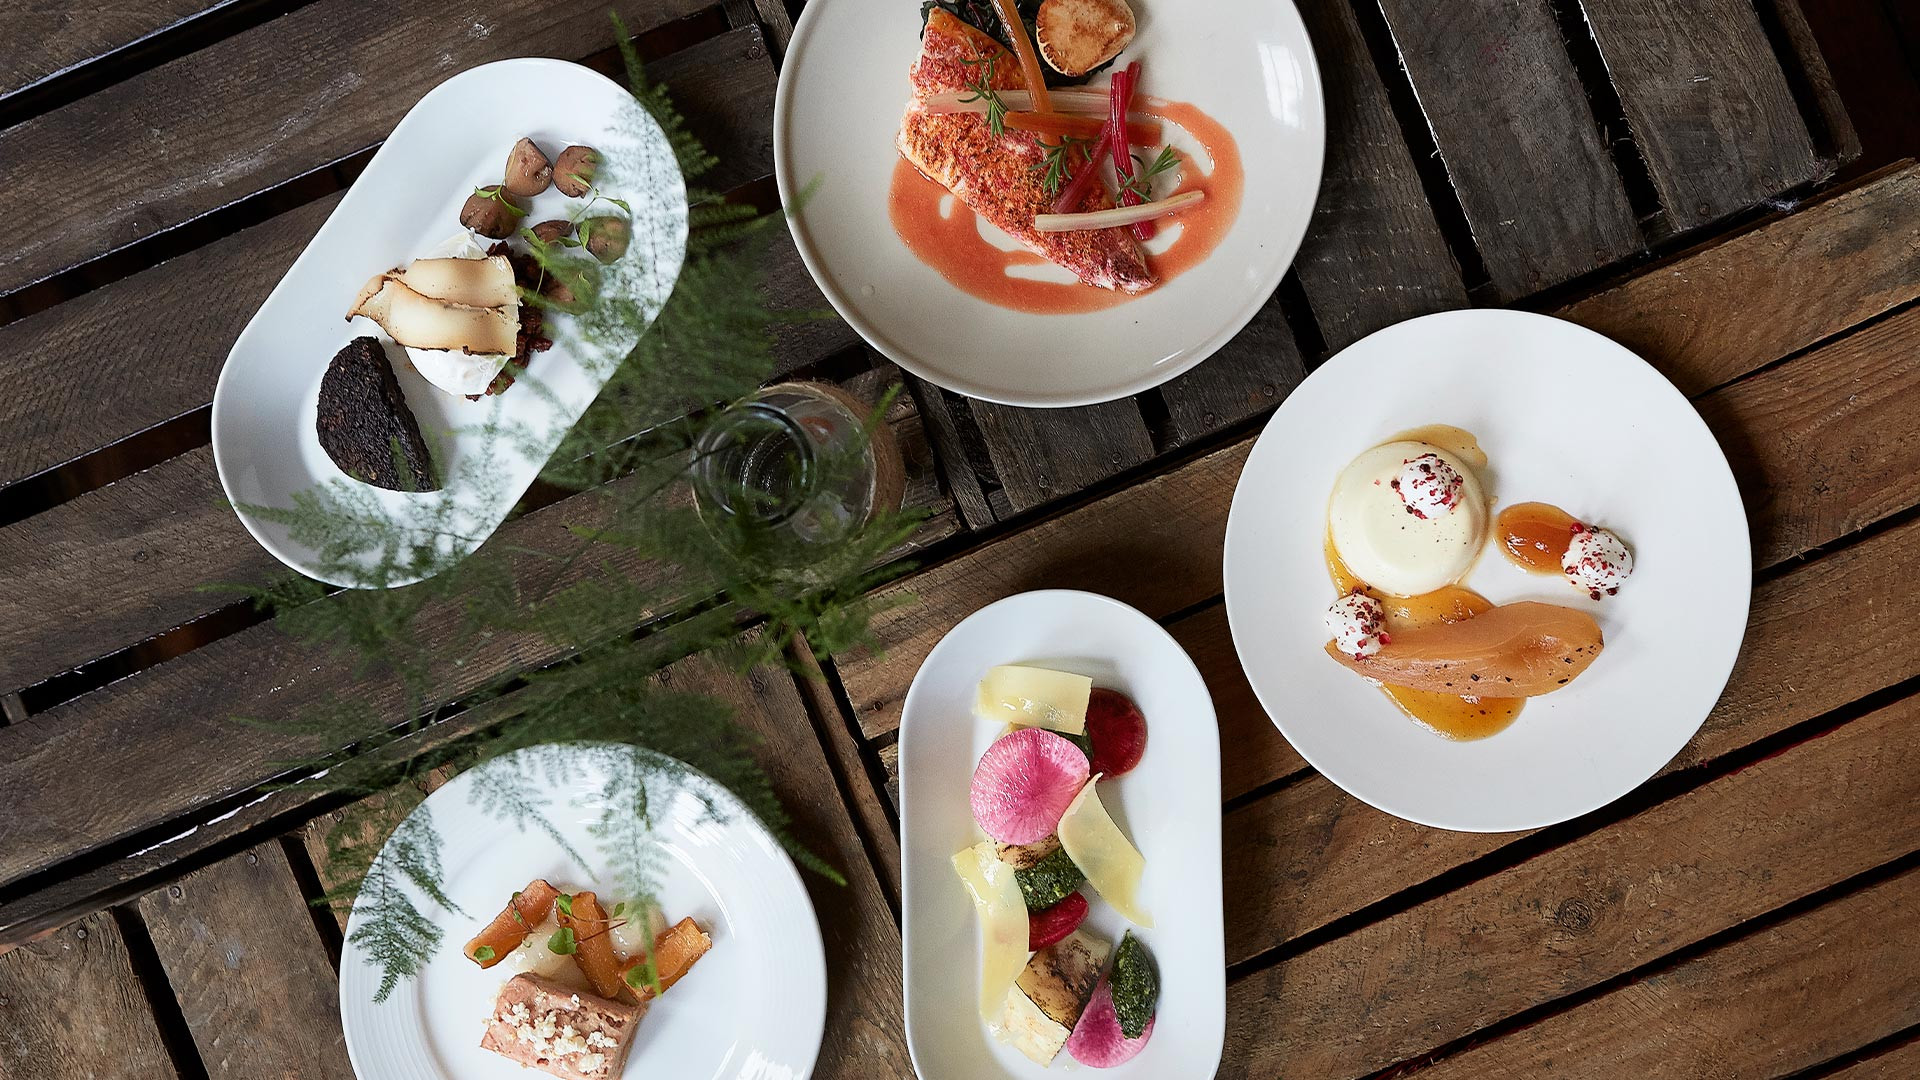 A selection of dishes at Borough Plates